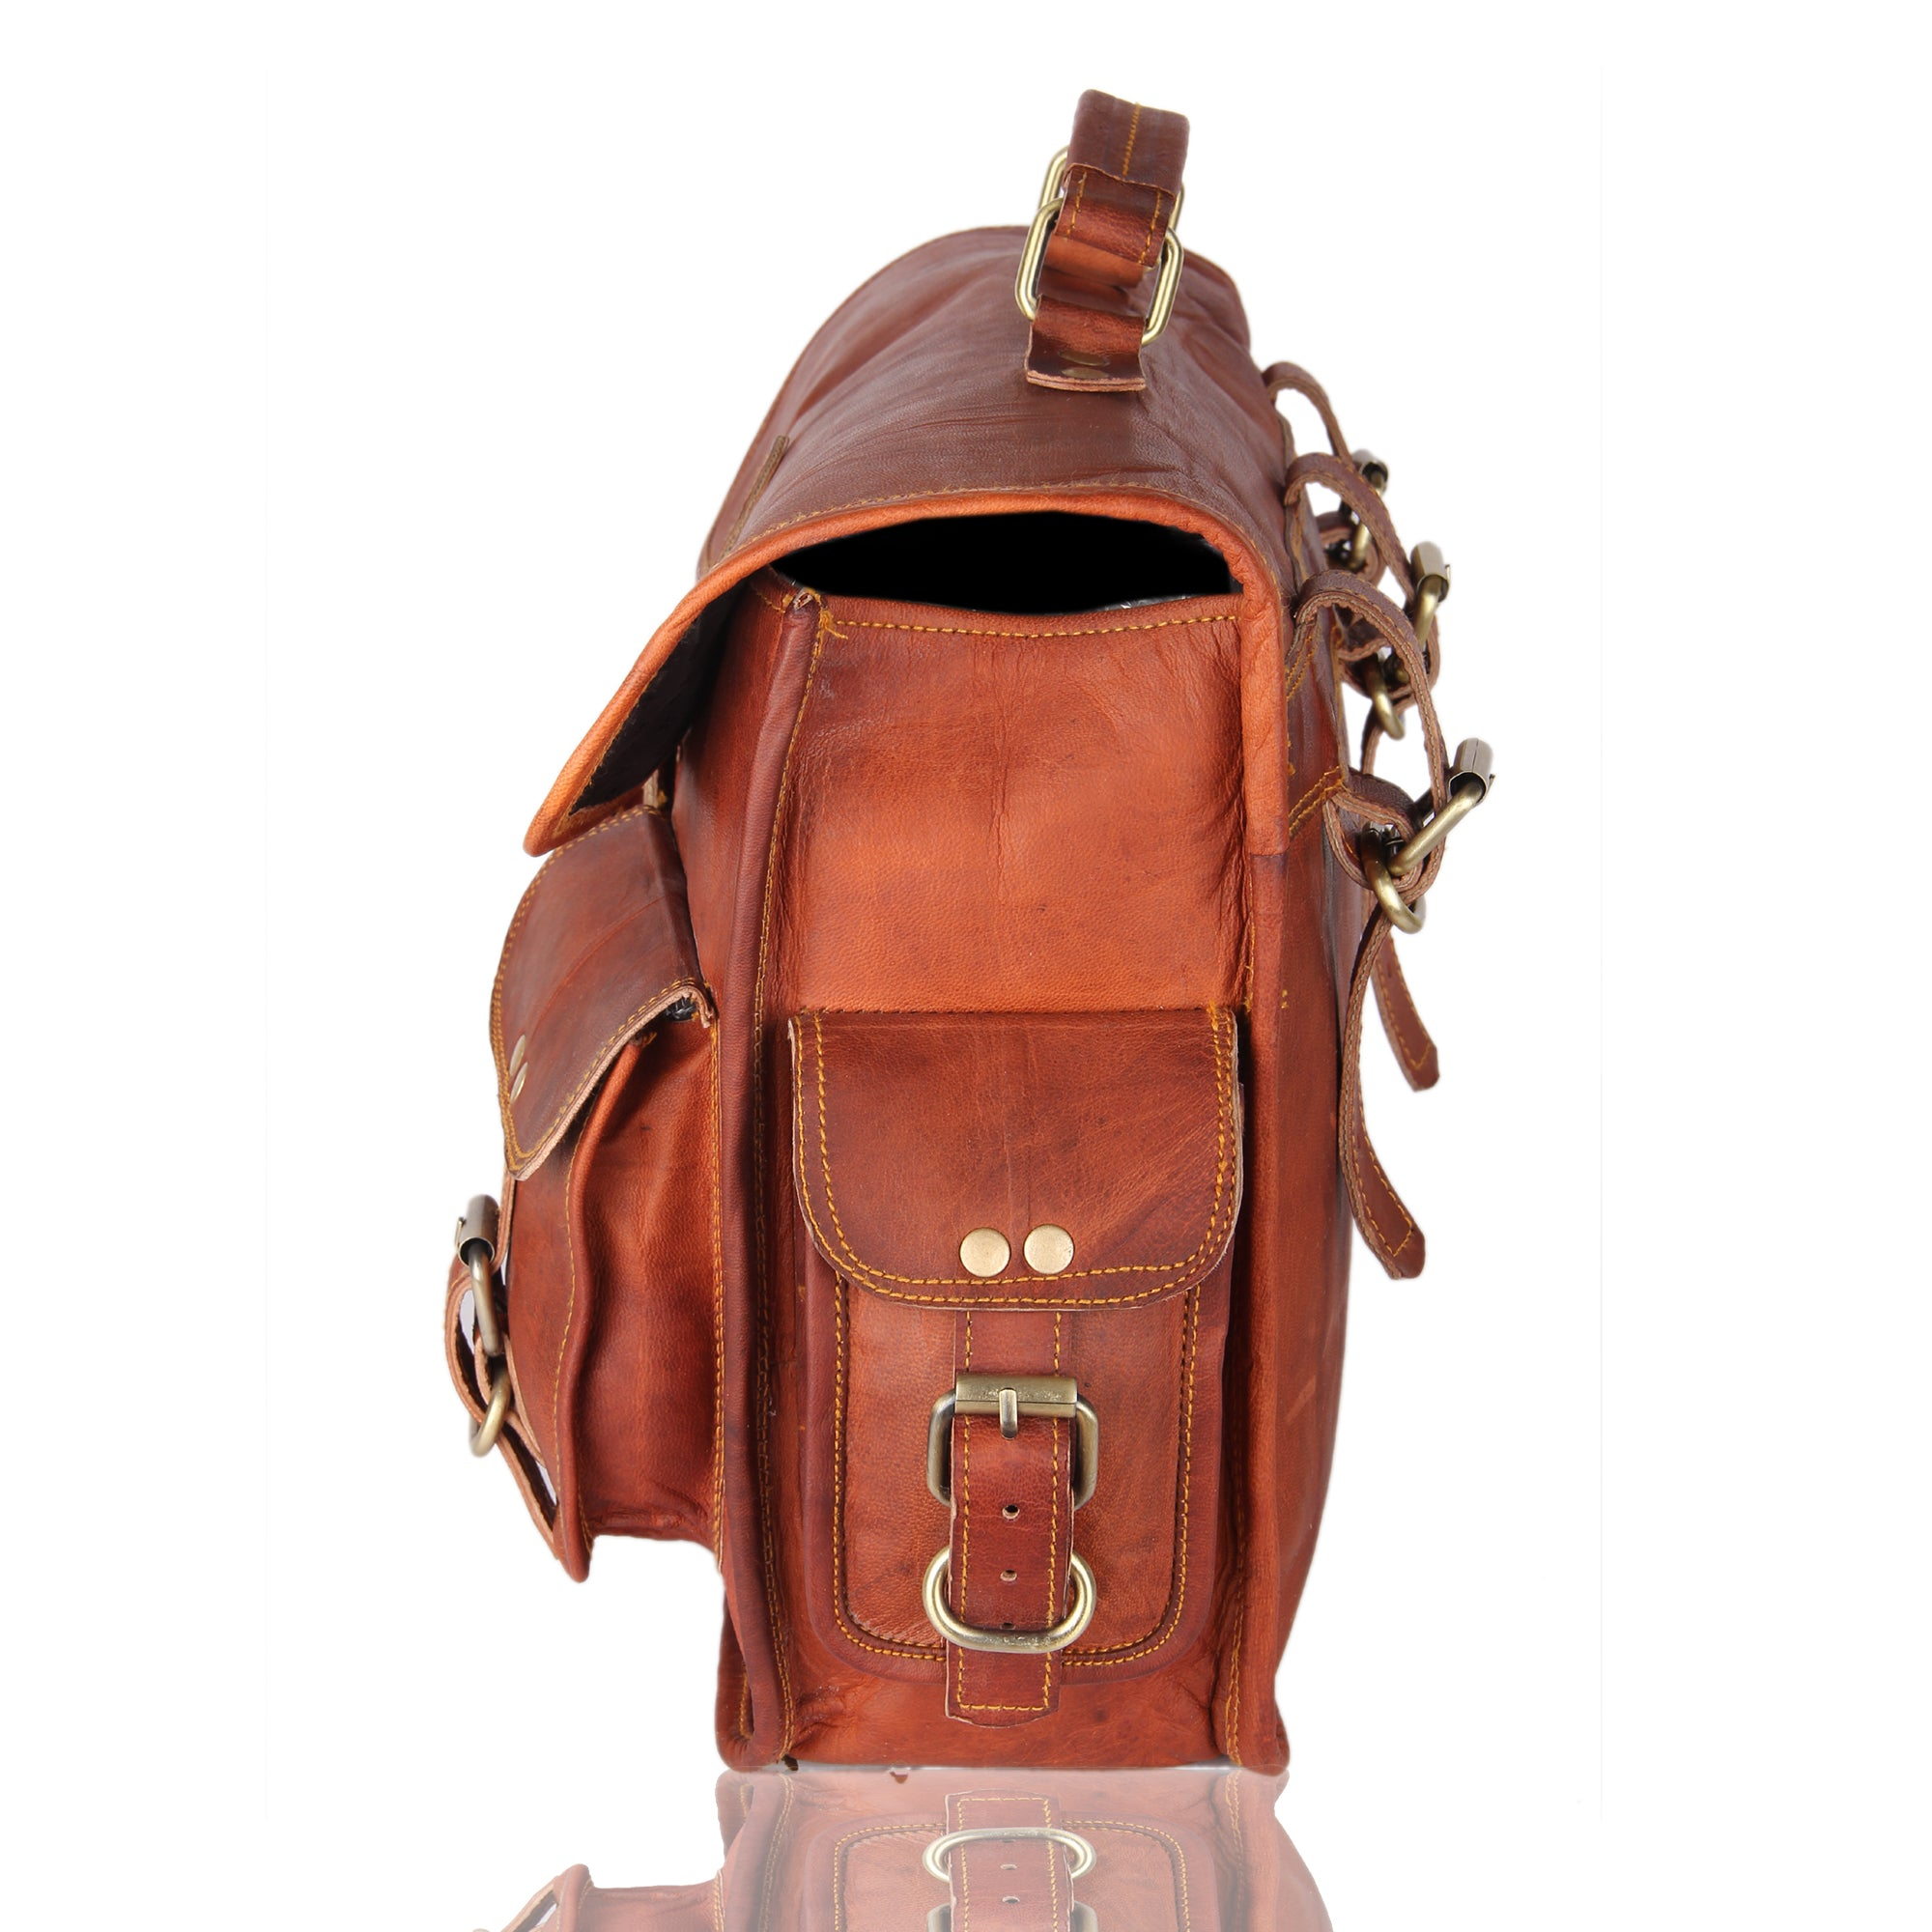 Leather Native 2 Side Pouch Brown Leather Motorcycle Side Pouch Saddlebags Saddle Bag Panniers (2 BAGS)